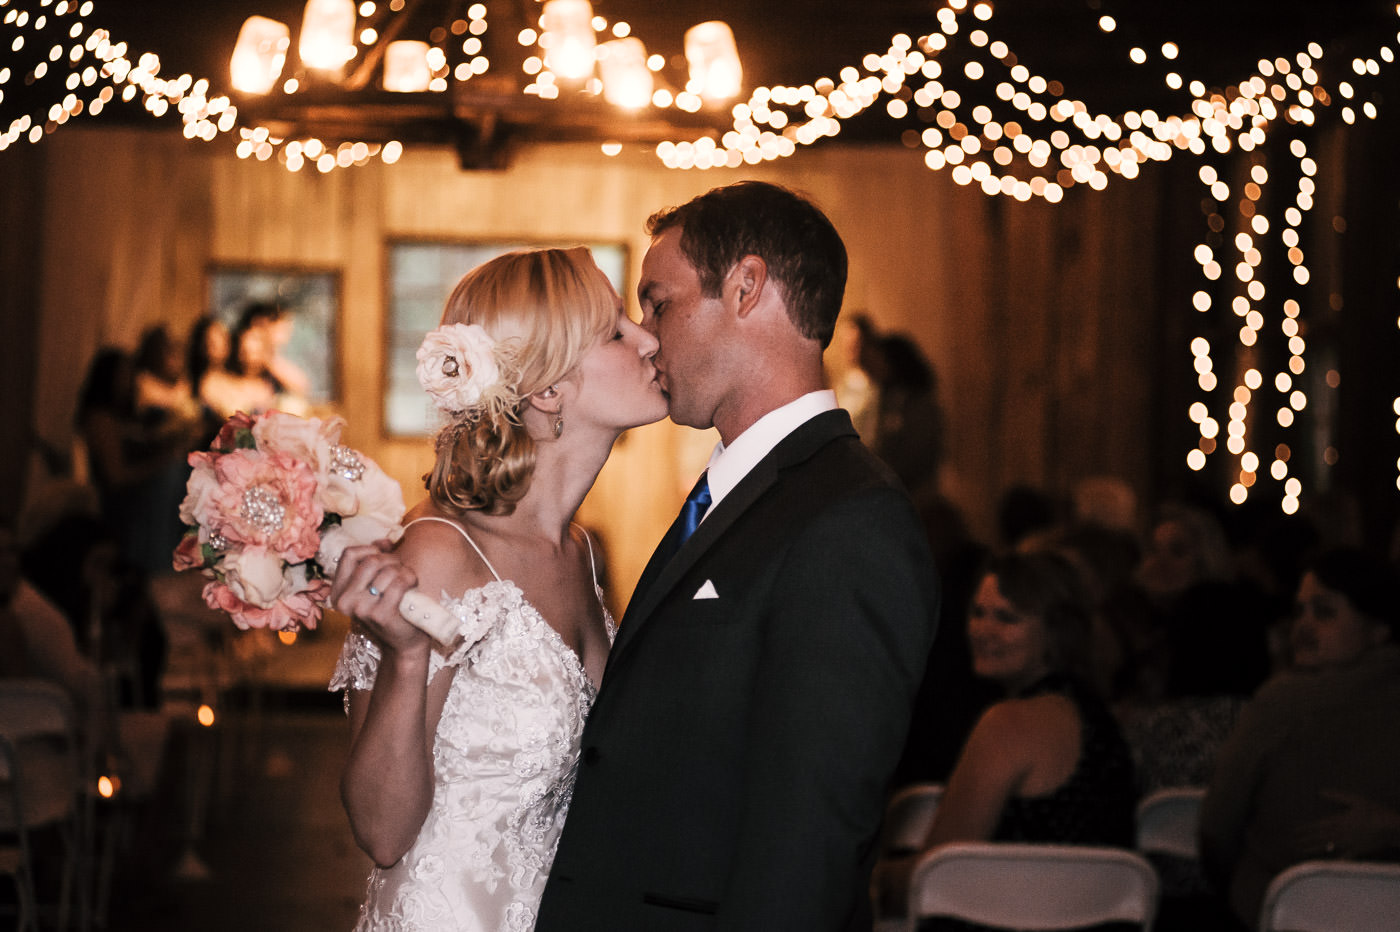 couple stops for one more kiss before they go down the aisle.